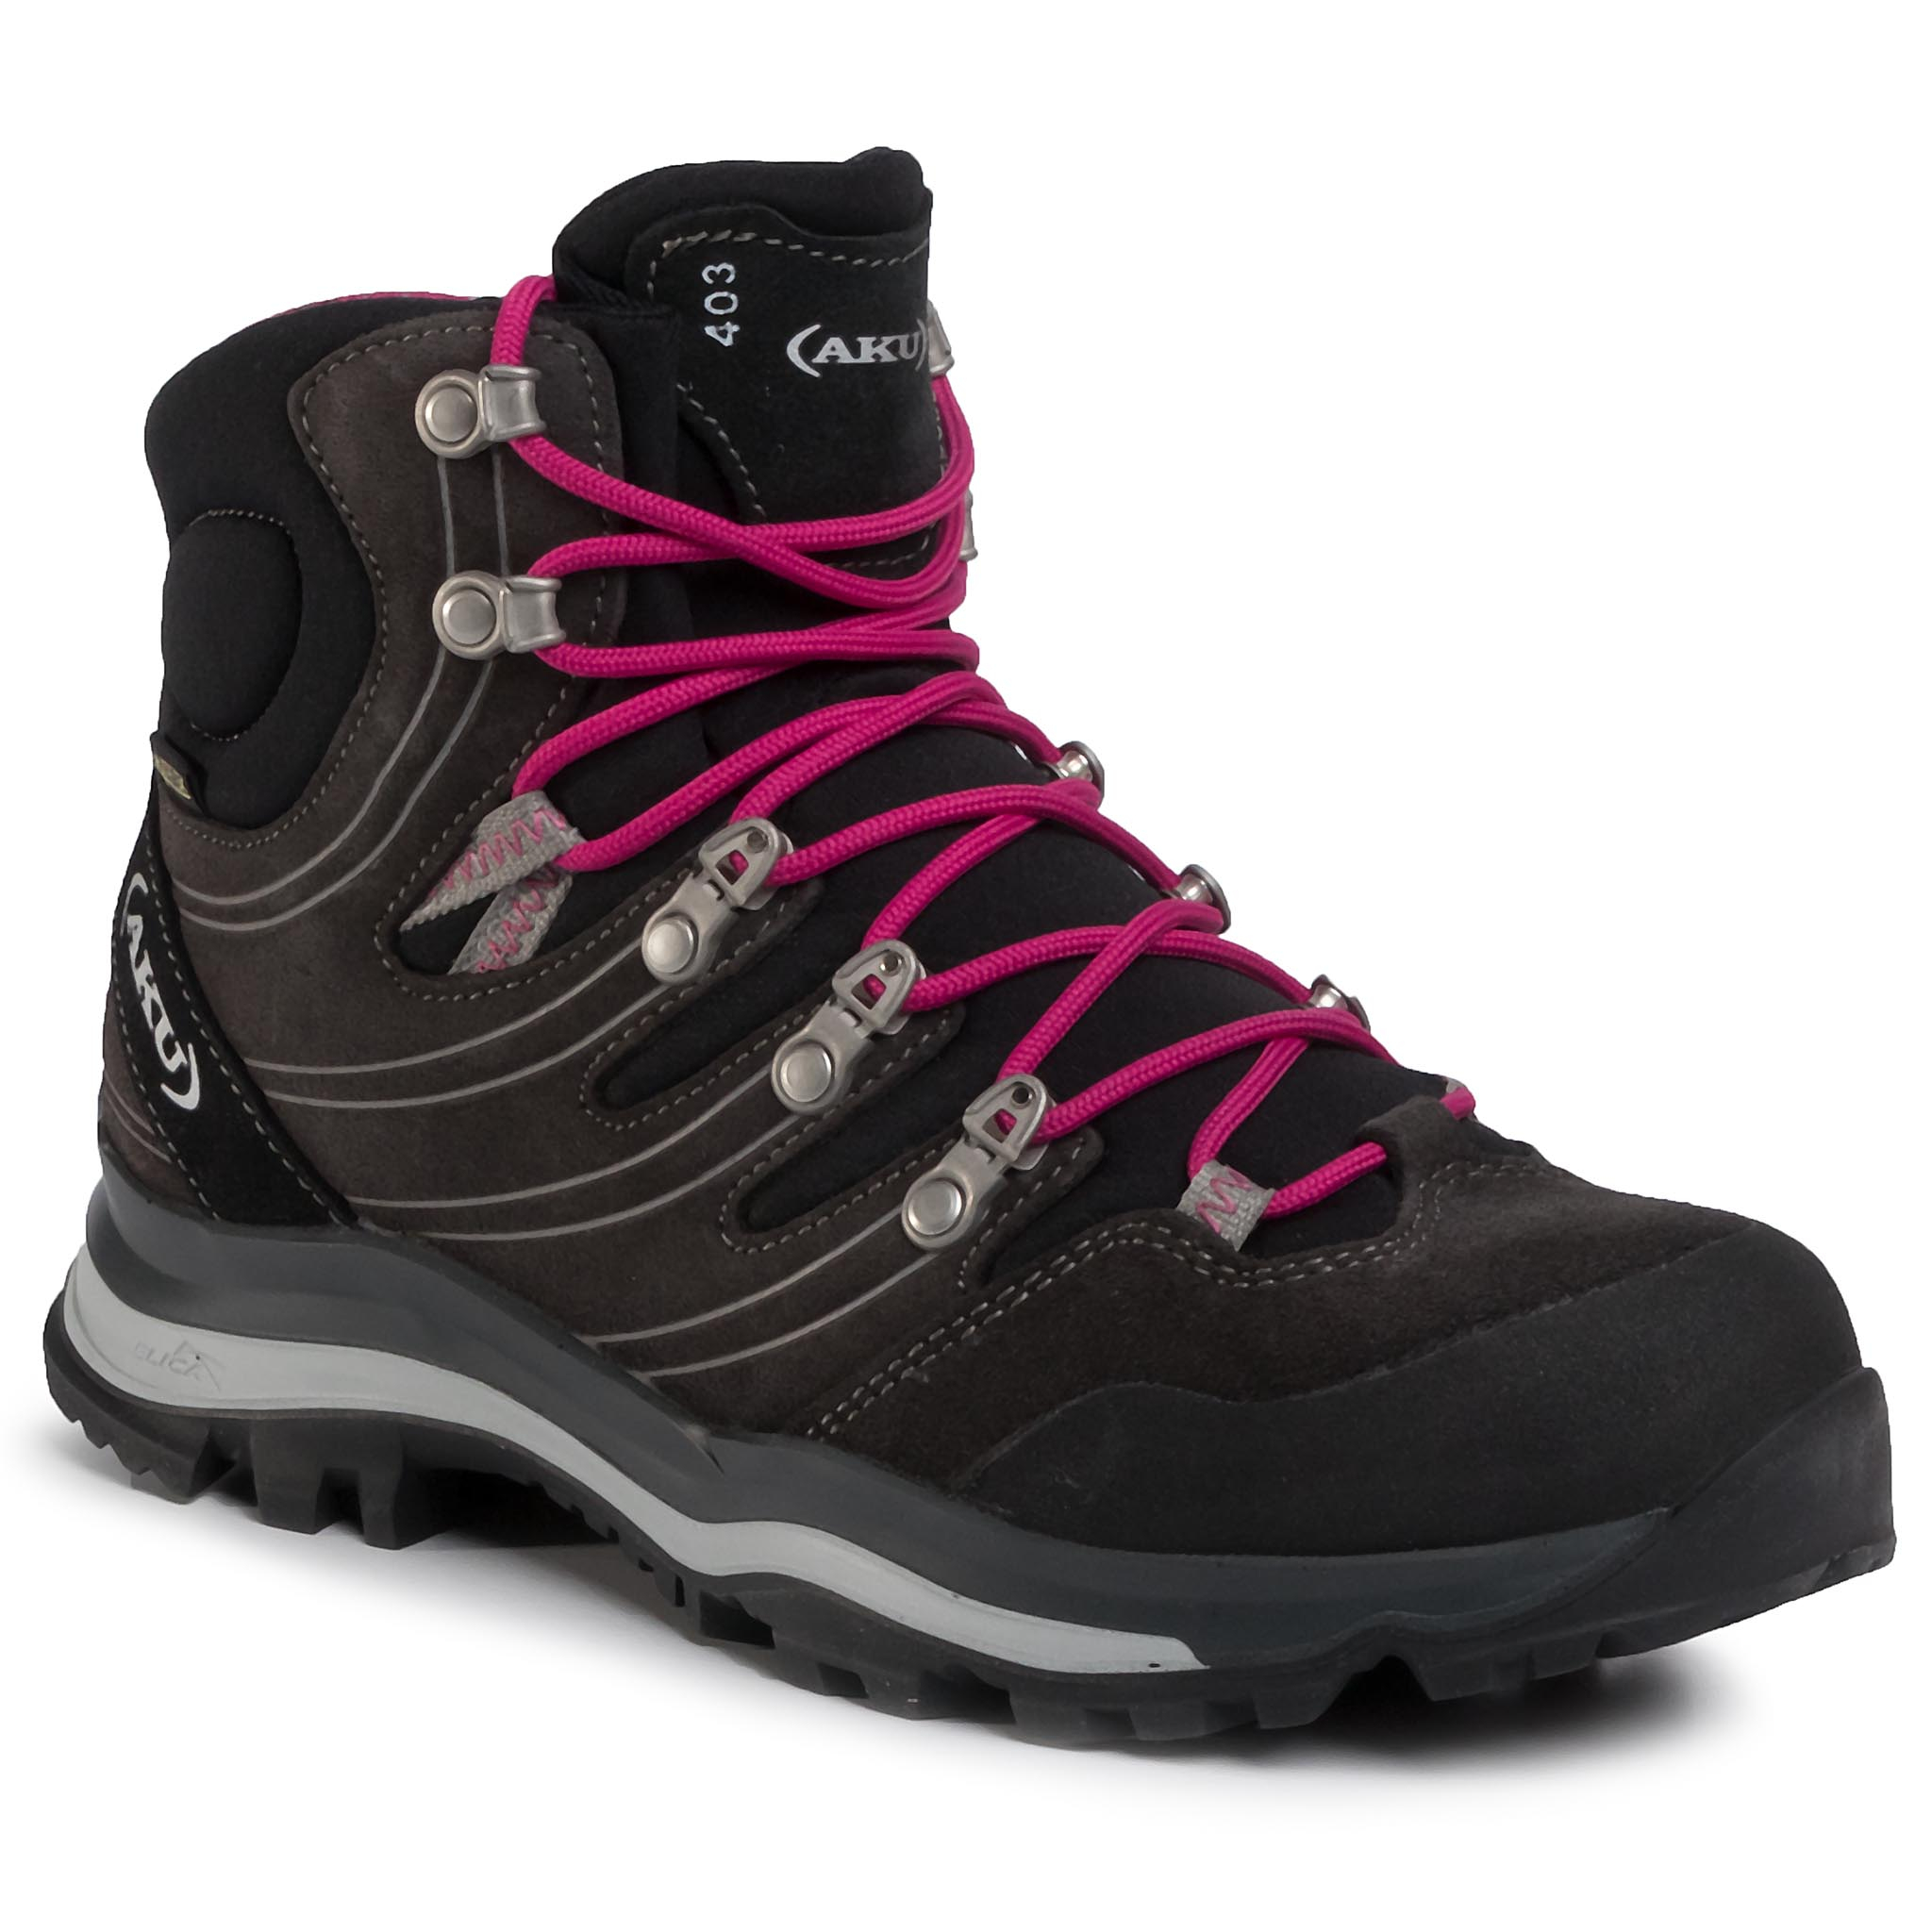 Trekkings Aku - Alterra Gtx W's Gore-Tex 403 Anthr./Magenta 309 imagine epantofi.ro 2021